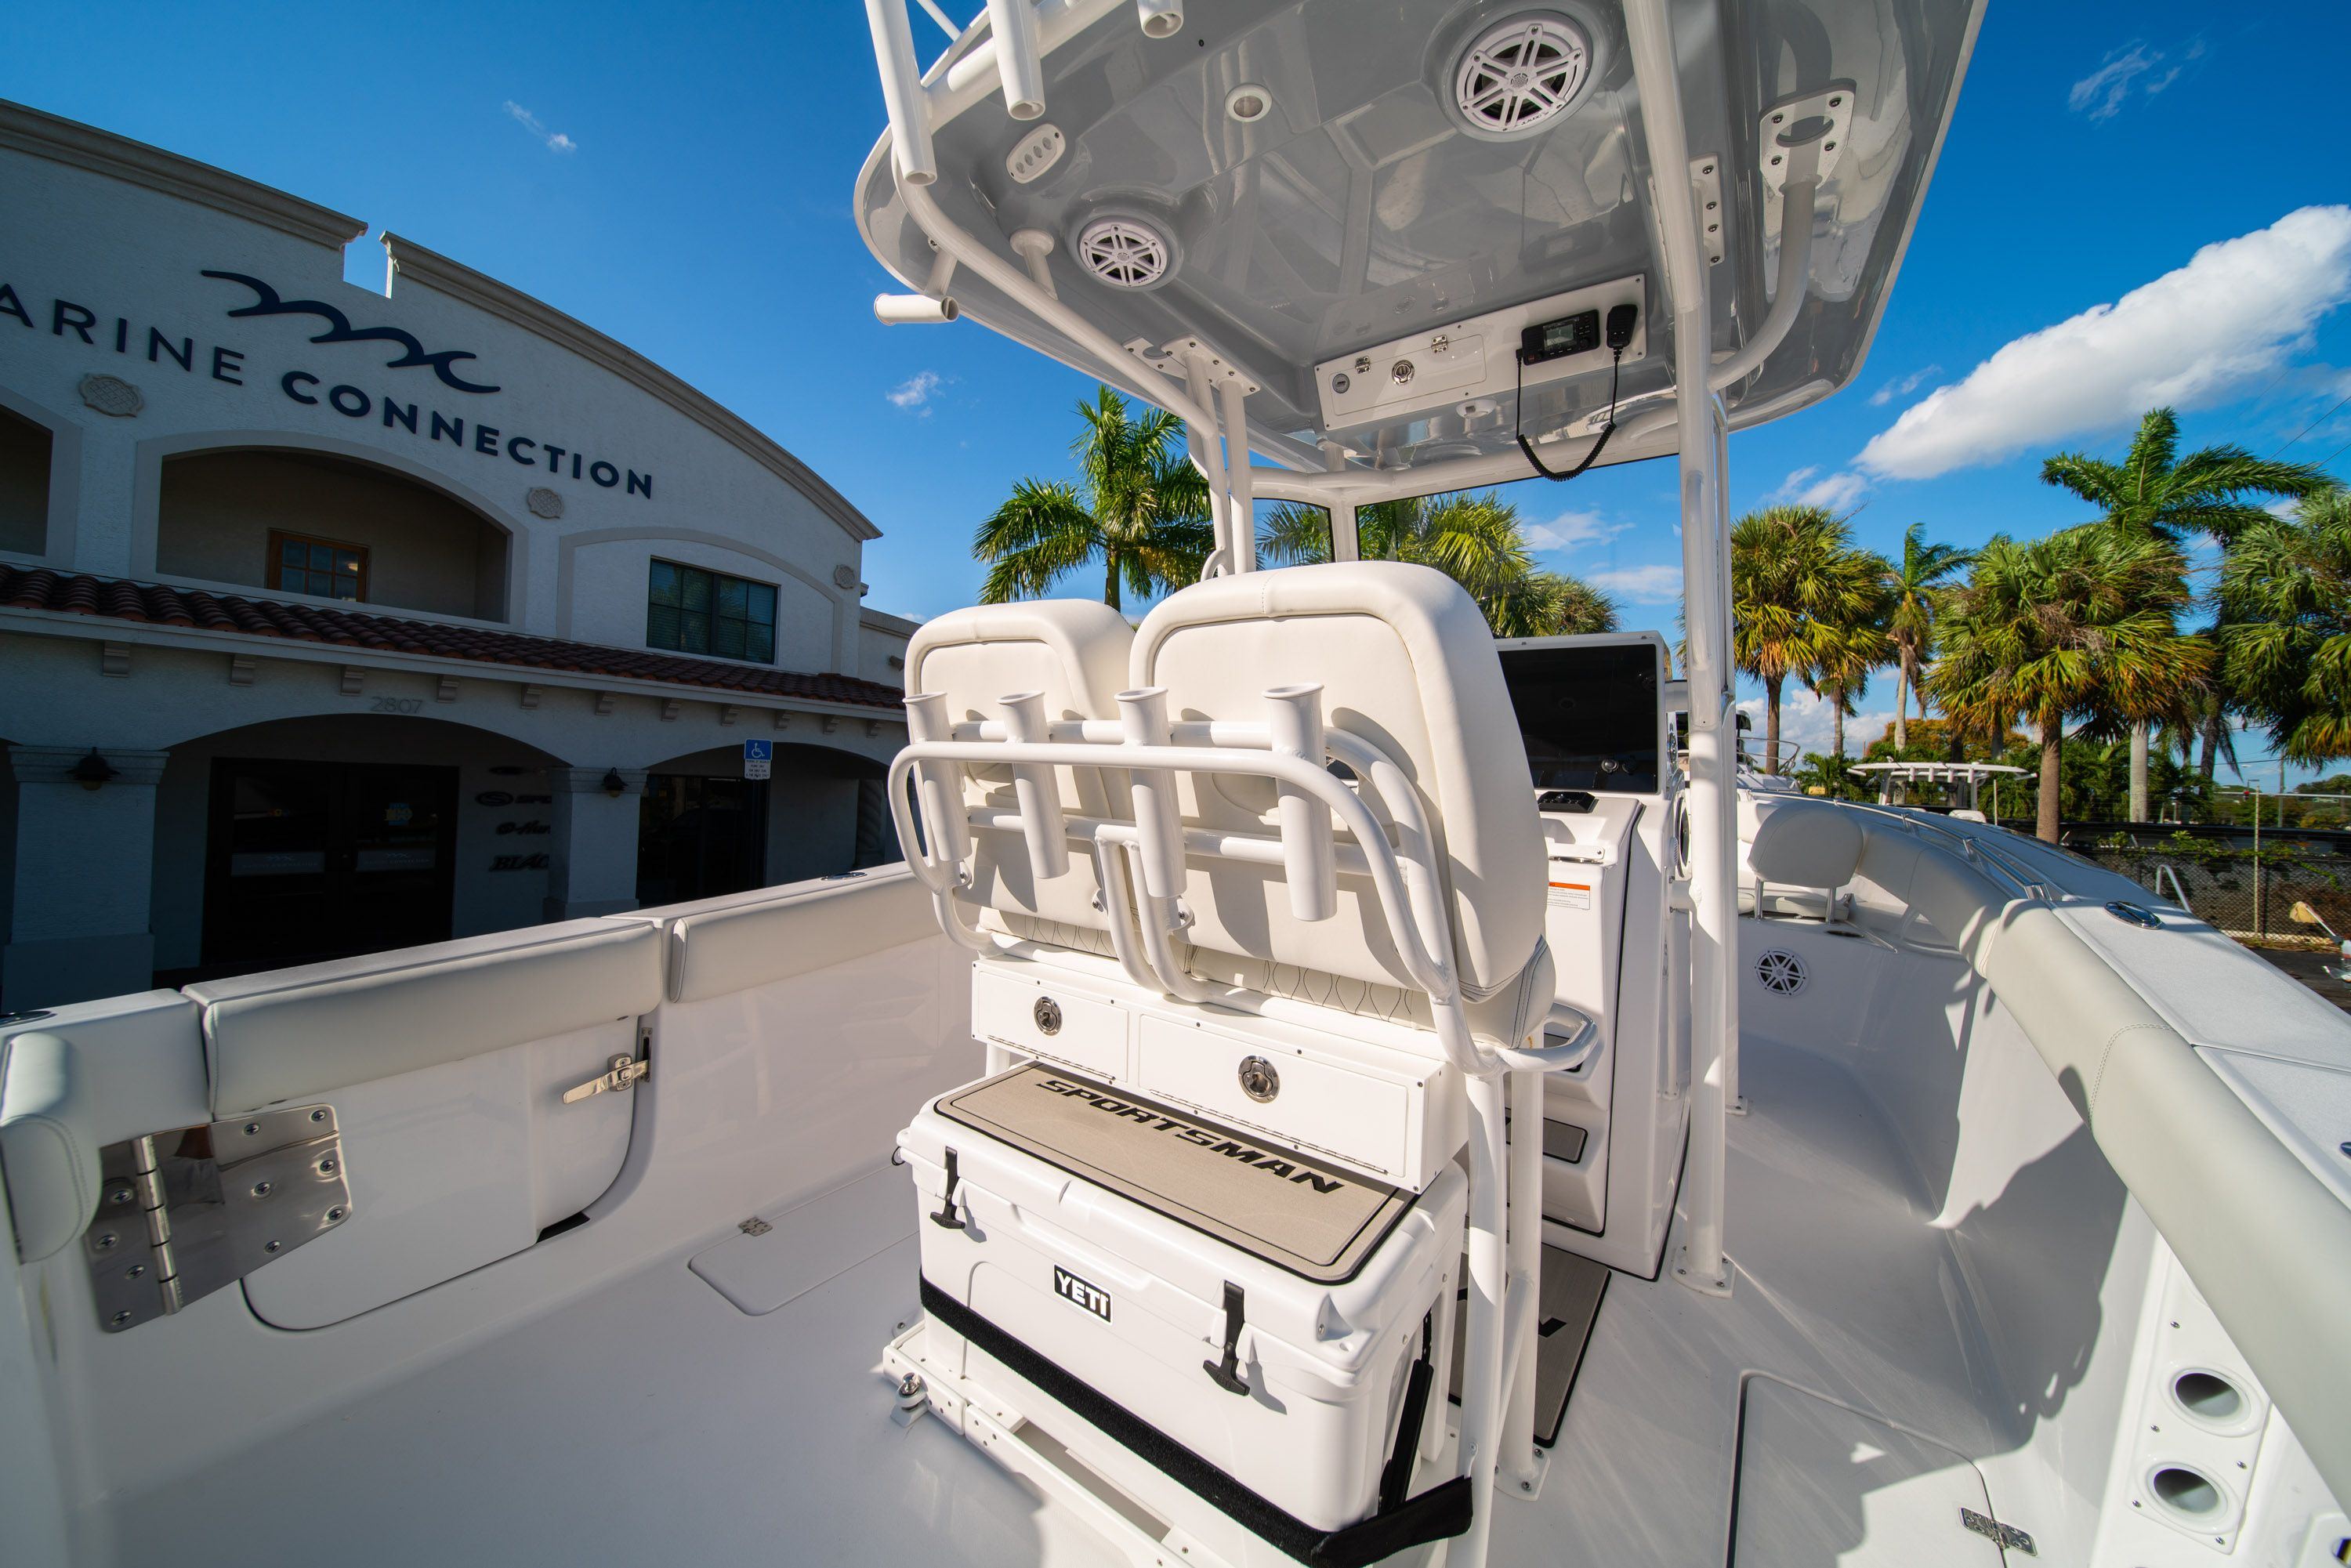 Thumbnail 22 for New 2020 Sportsman Open 252 Center Console boat for sale in West Palm Beach, FL